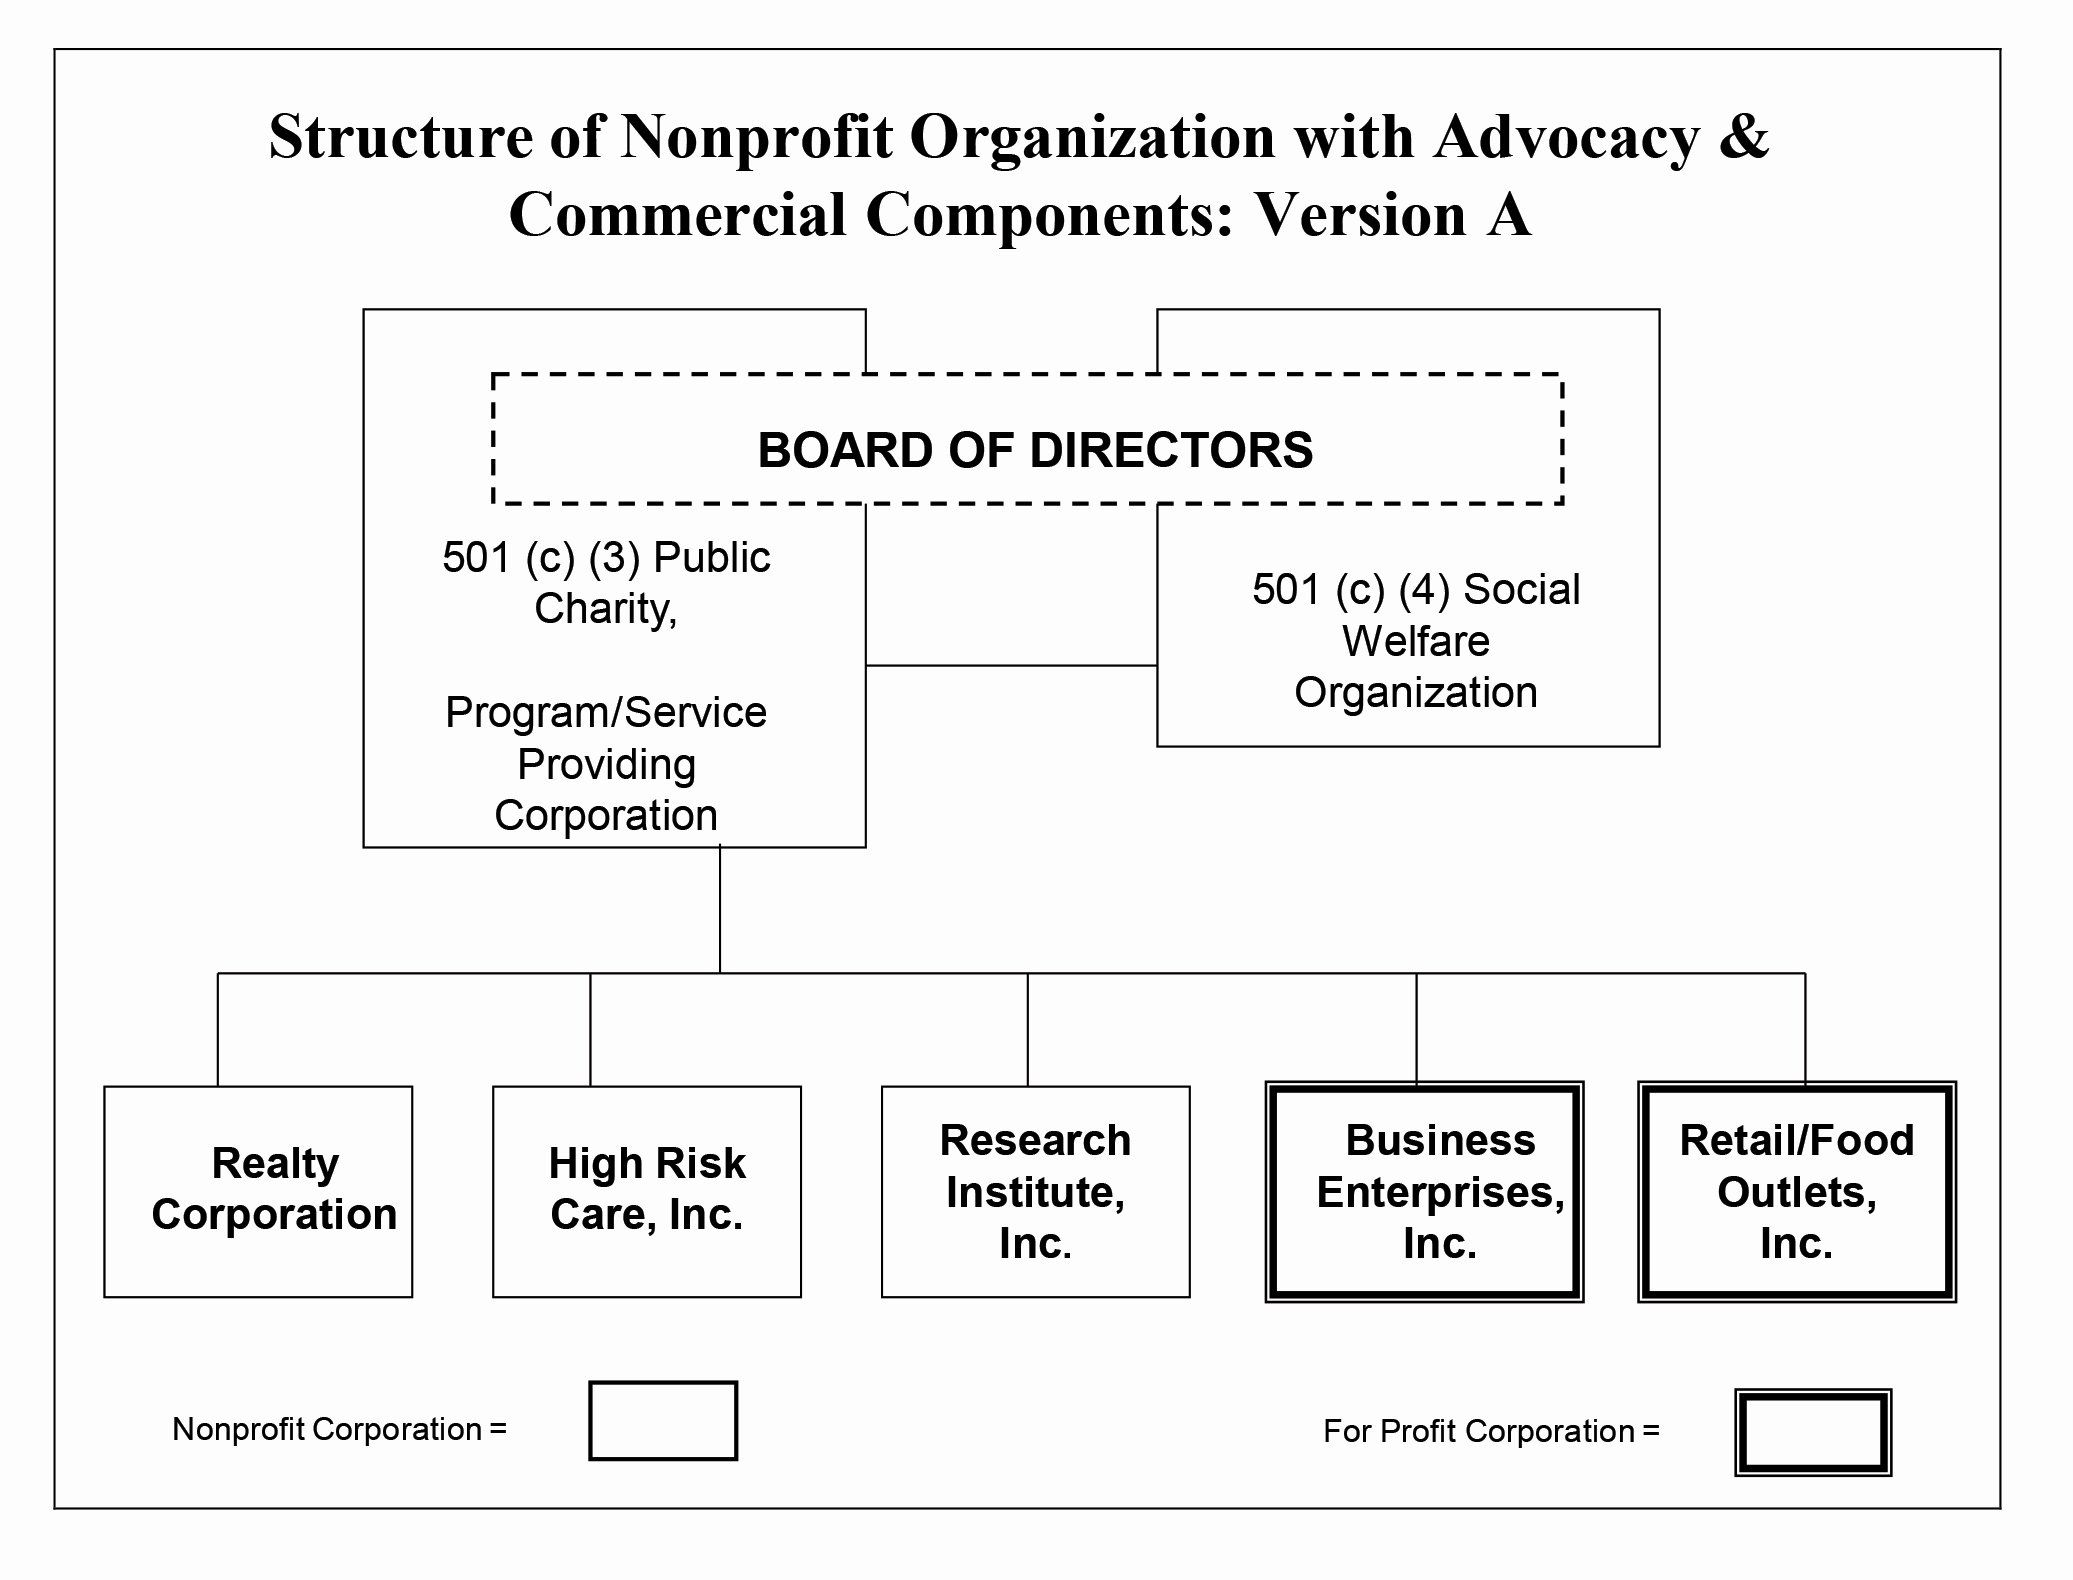 Nonprofit Organizational Chart Template Fresh Nonprofit Structure Nonprofit Advocacy Nonpro Organizational Chart Charts And Graphs Engineering Resume Templates